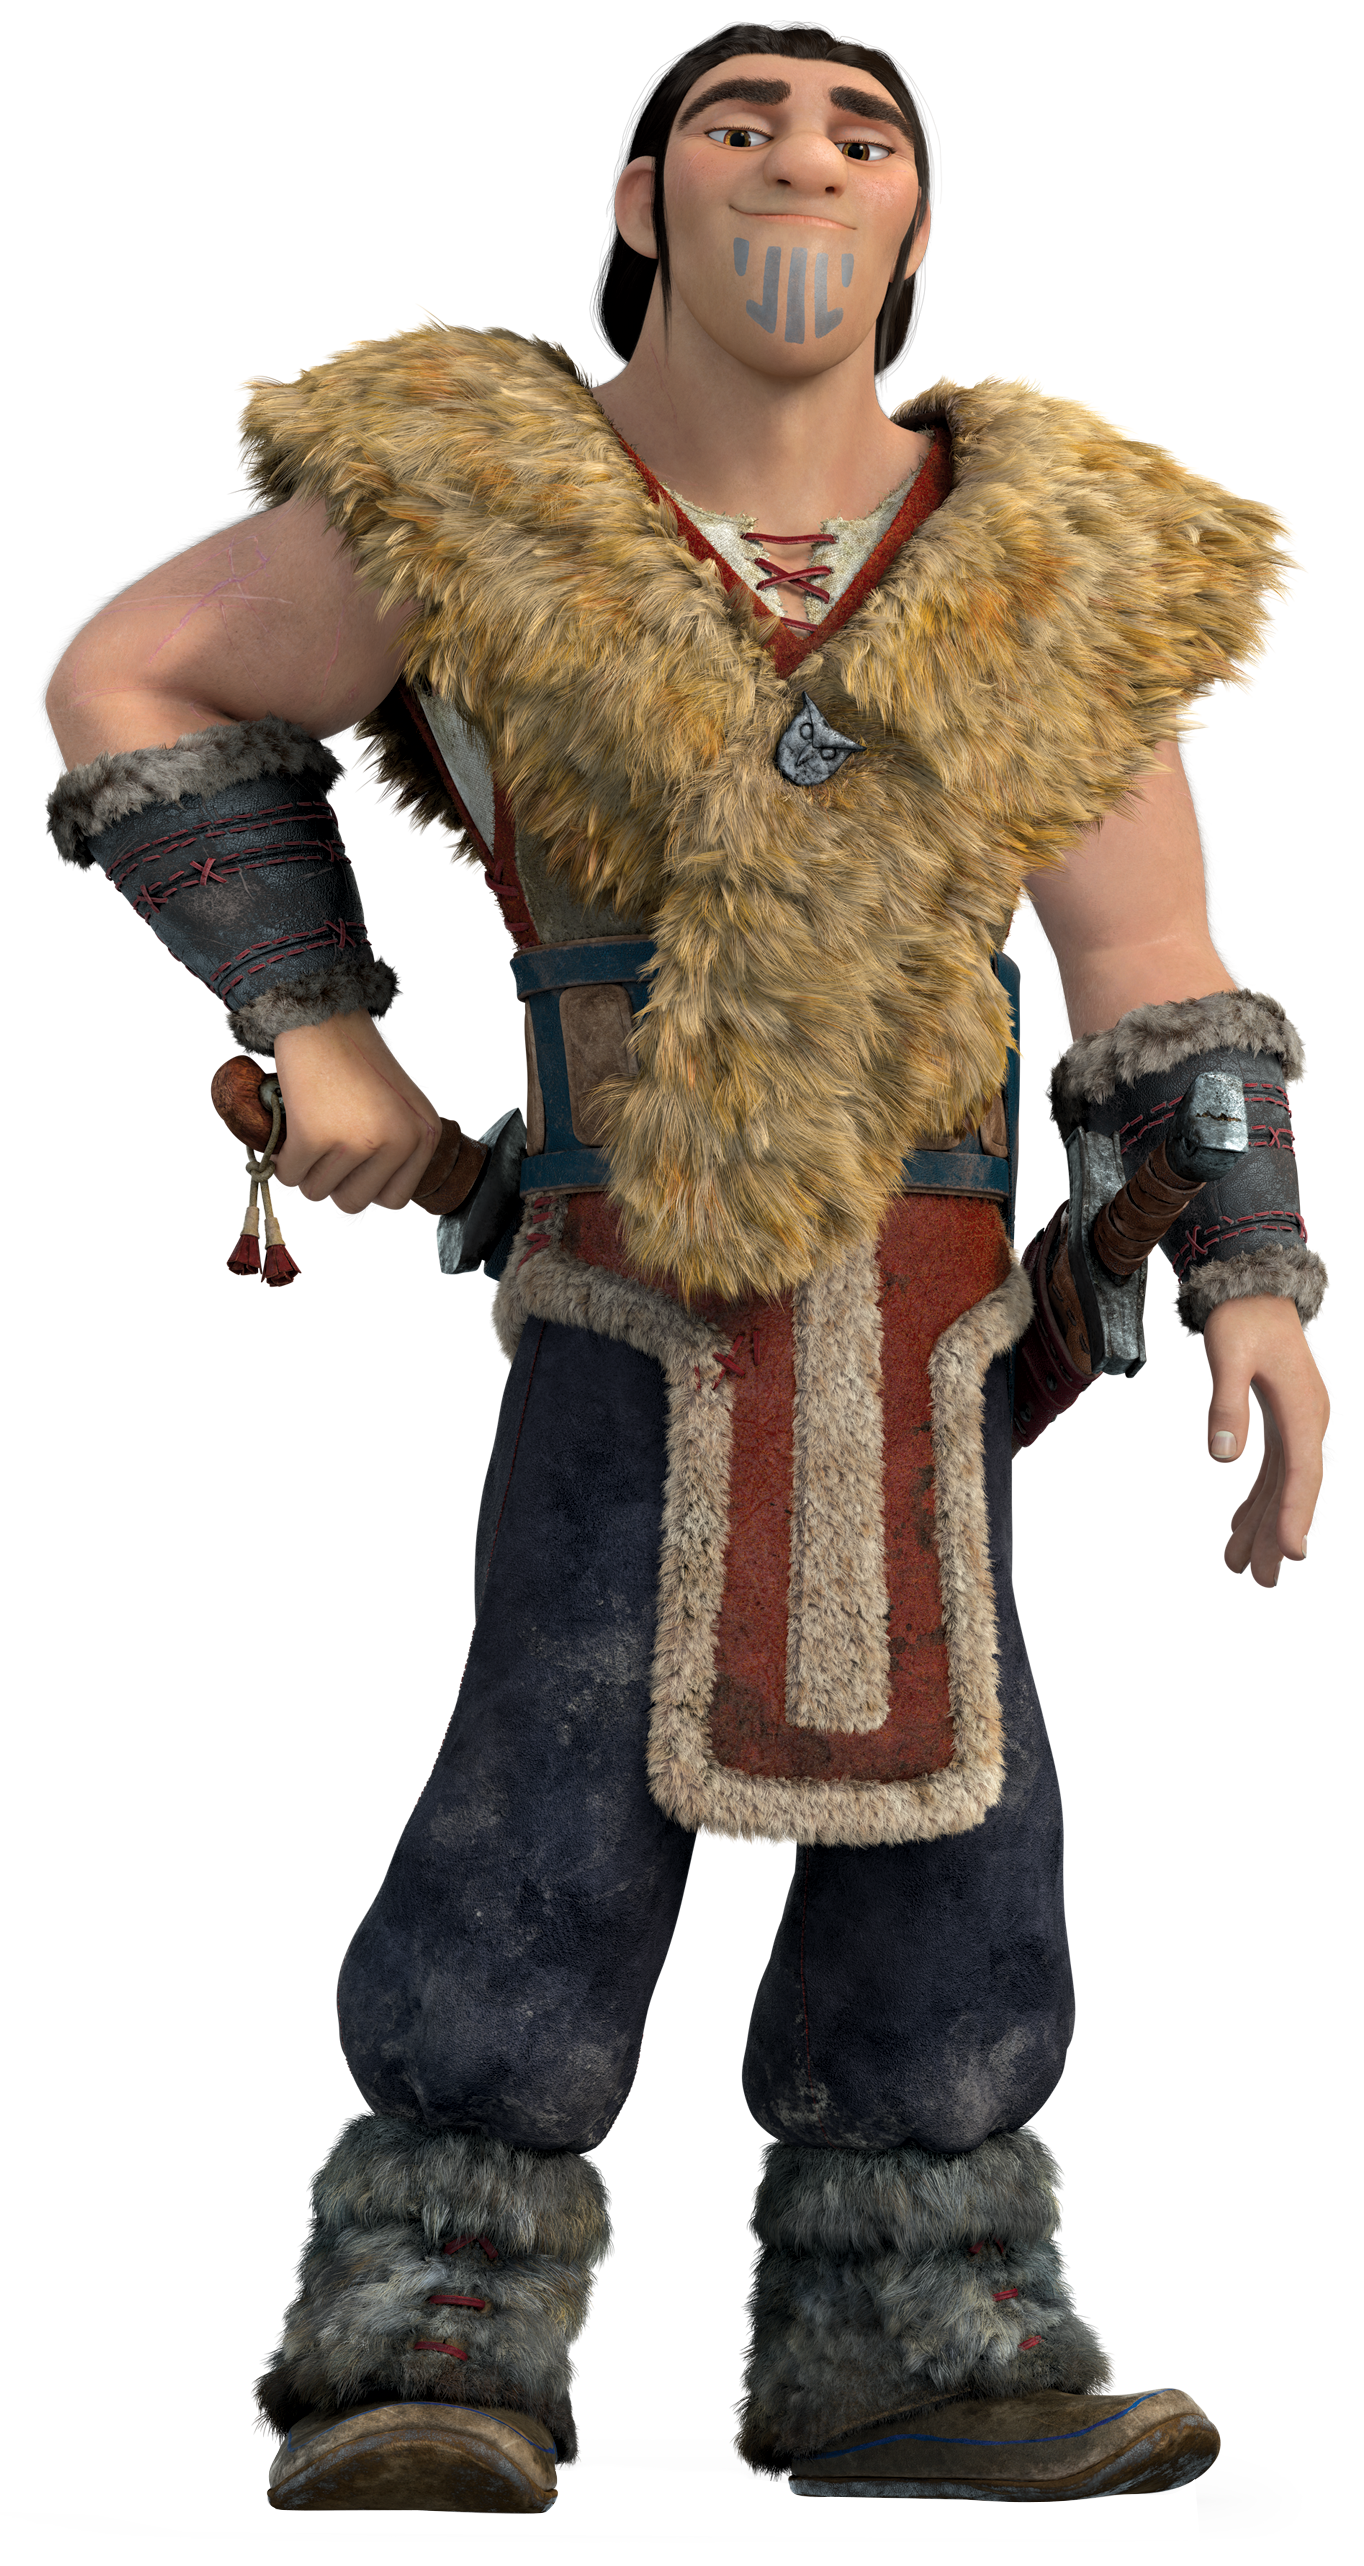 Eret Son Of Eret How To Train Your Dragon Wiki Fandom Powered